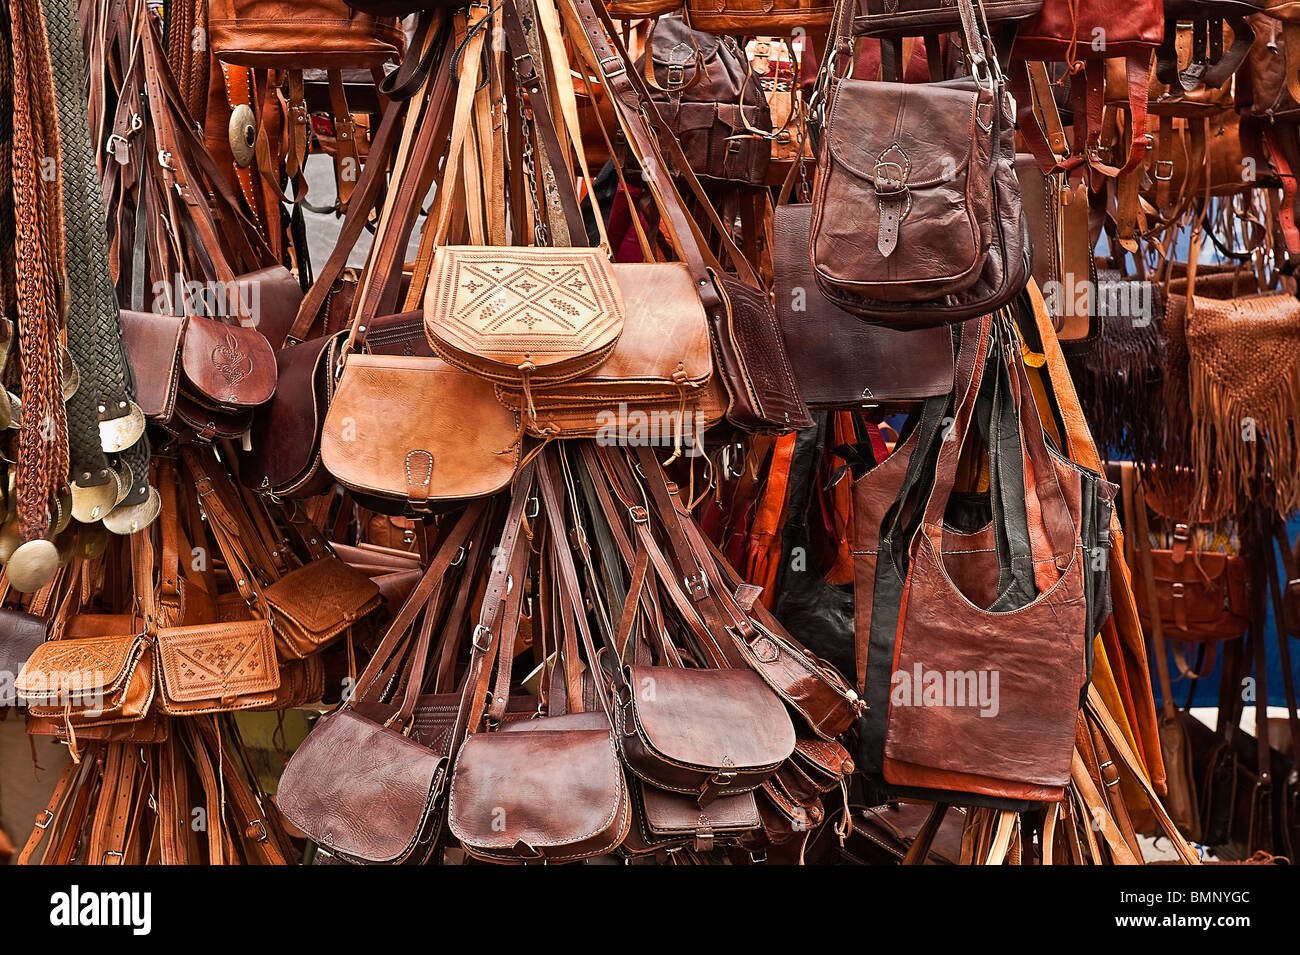 Leather goods for sale in an outdoor market, Madrid, Spain - Stock Image